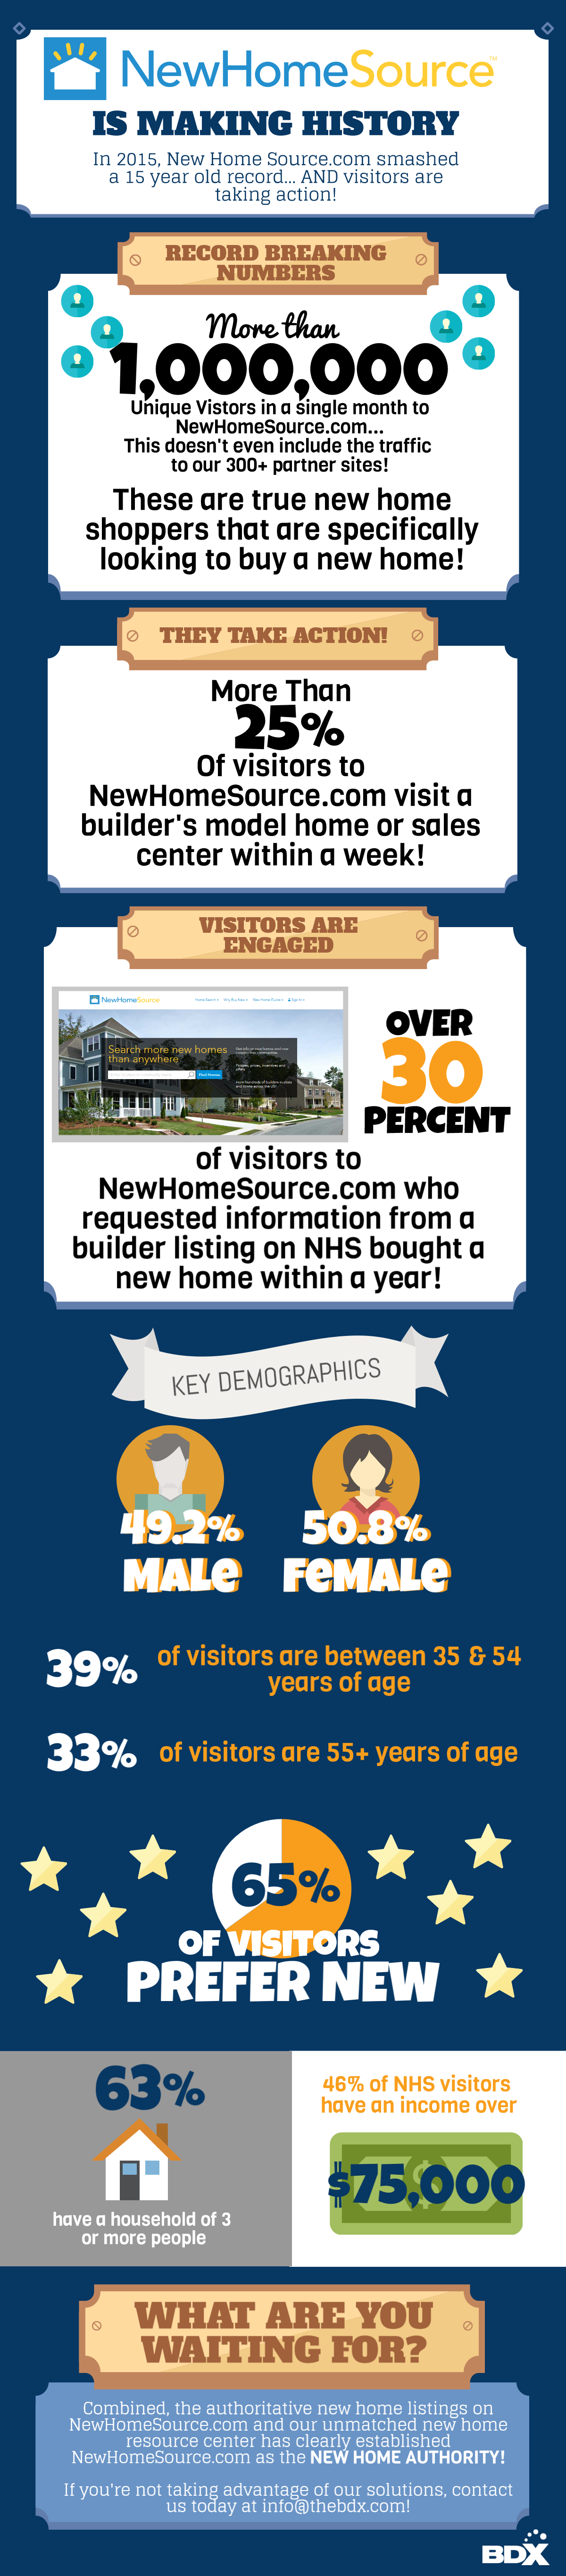 NewHomeSource Has A High Amount Of Website Visitors